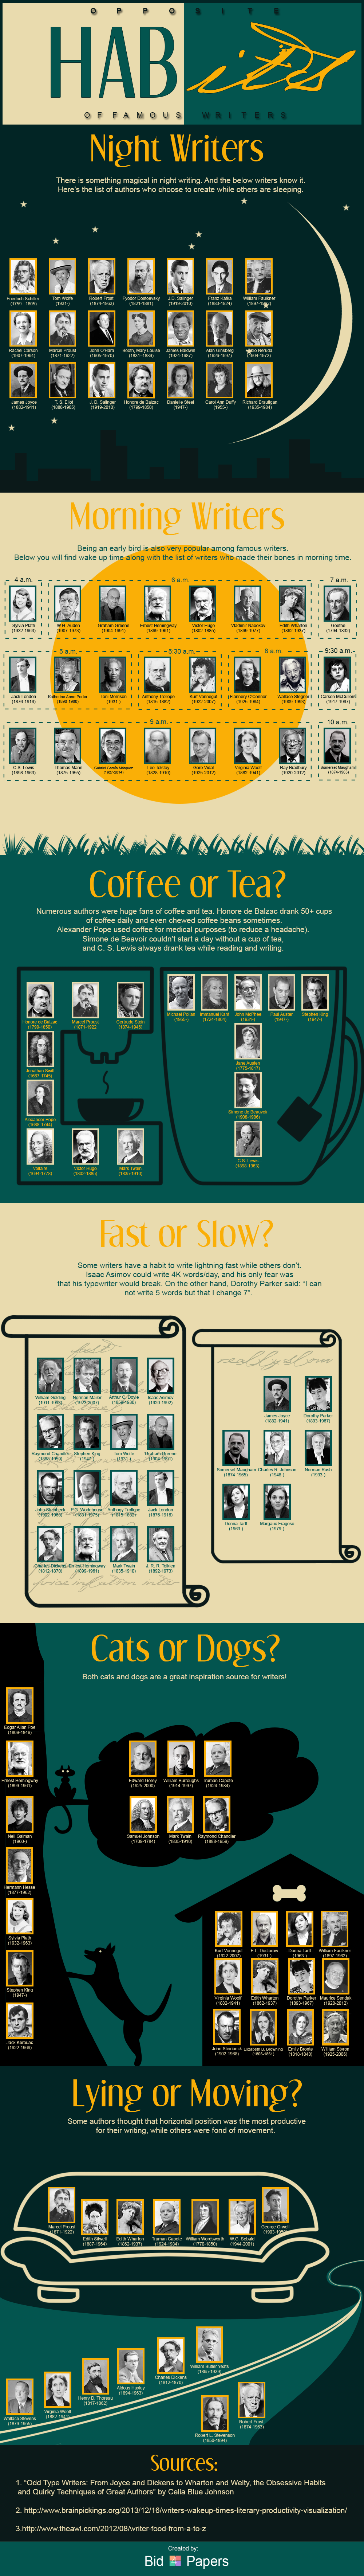 Inner Lives of Famous Writers: Habits and Eccentricities - Infographic